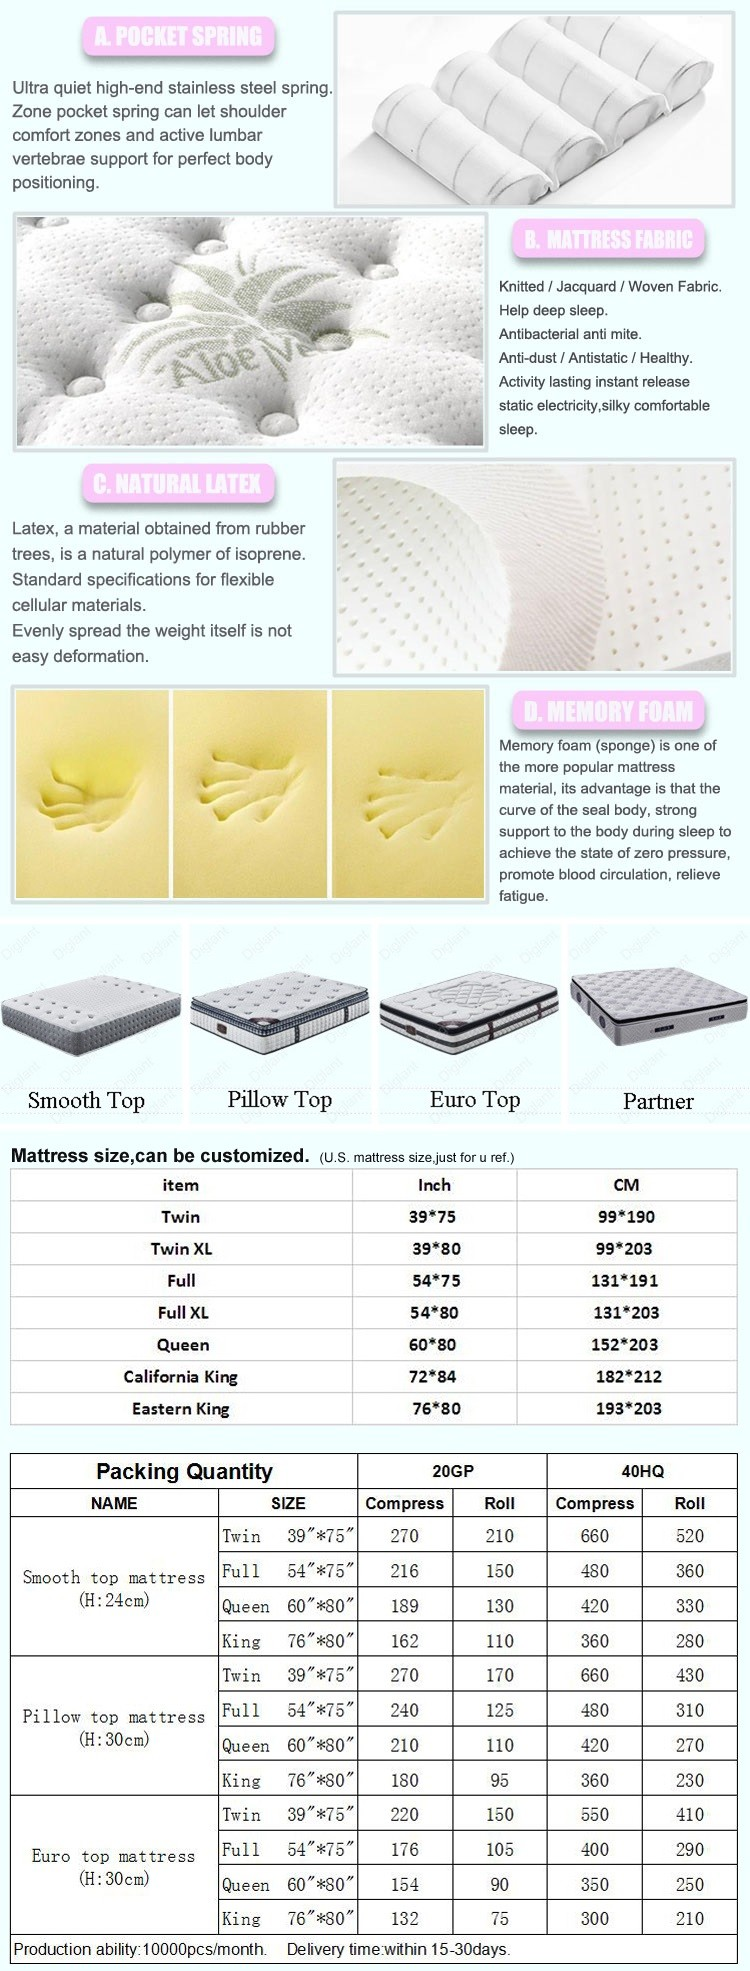 used pillow top mattress with memory foam royal mattress (A27-PL24)